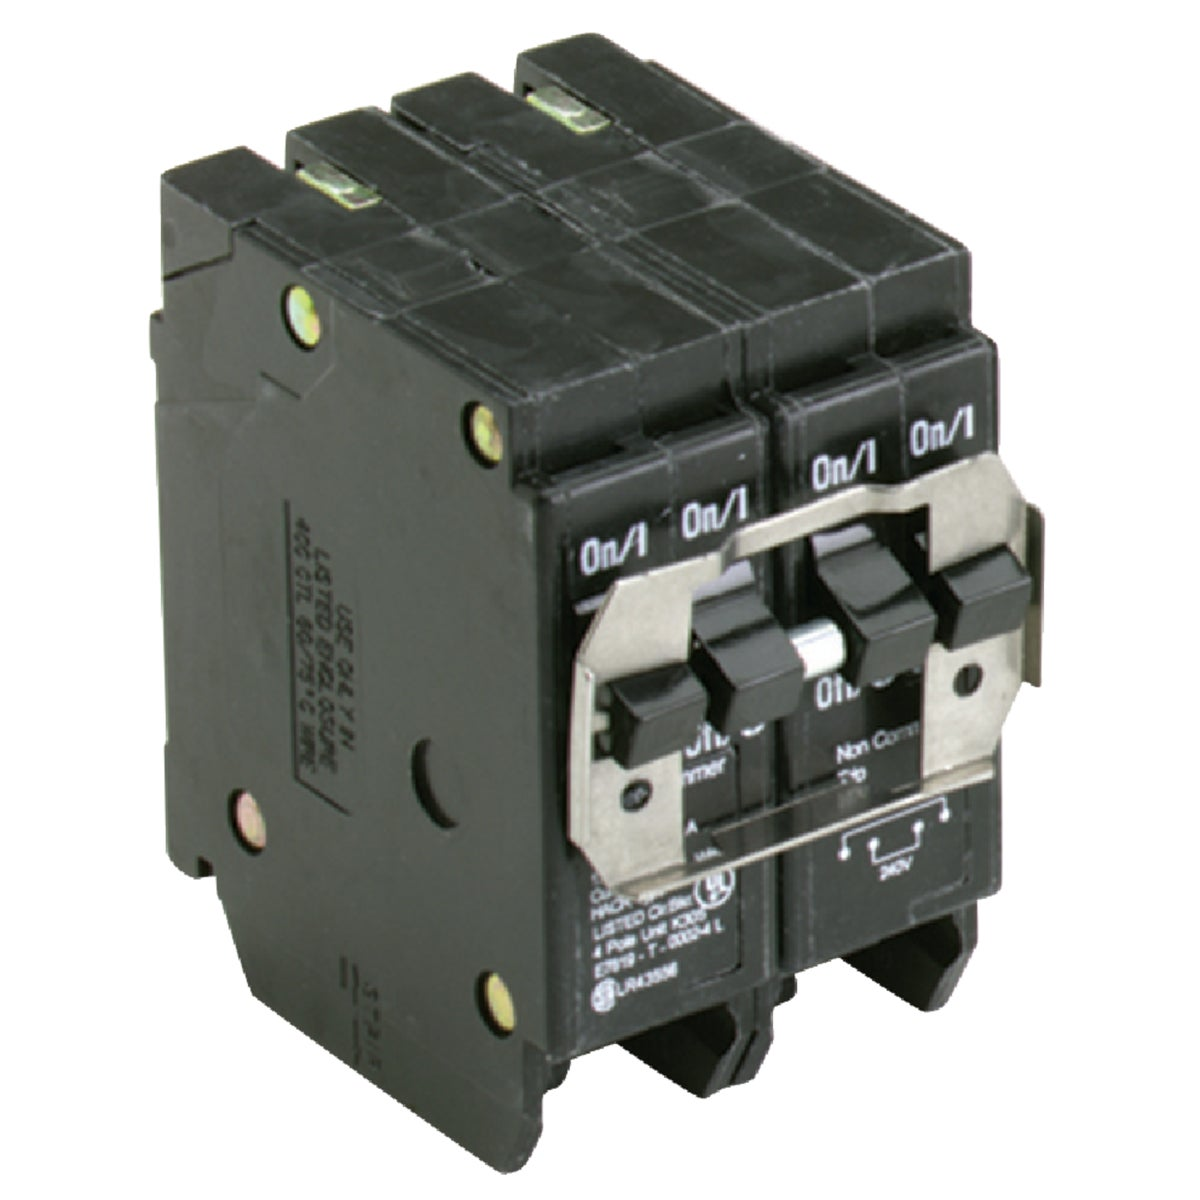 30A/30A CIRCUIT BREAKER - BQ230230 by Eaton Corporation